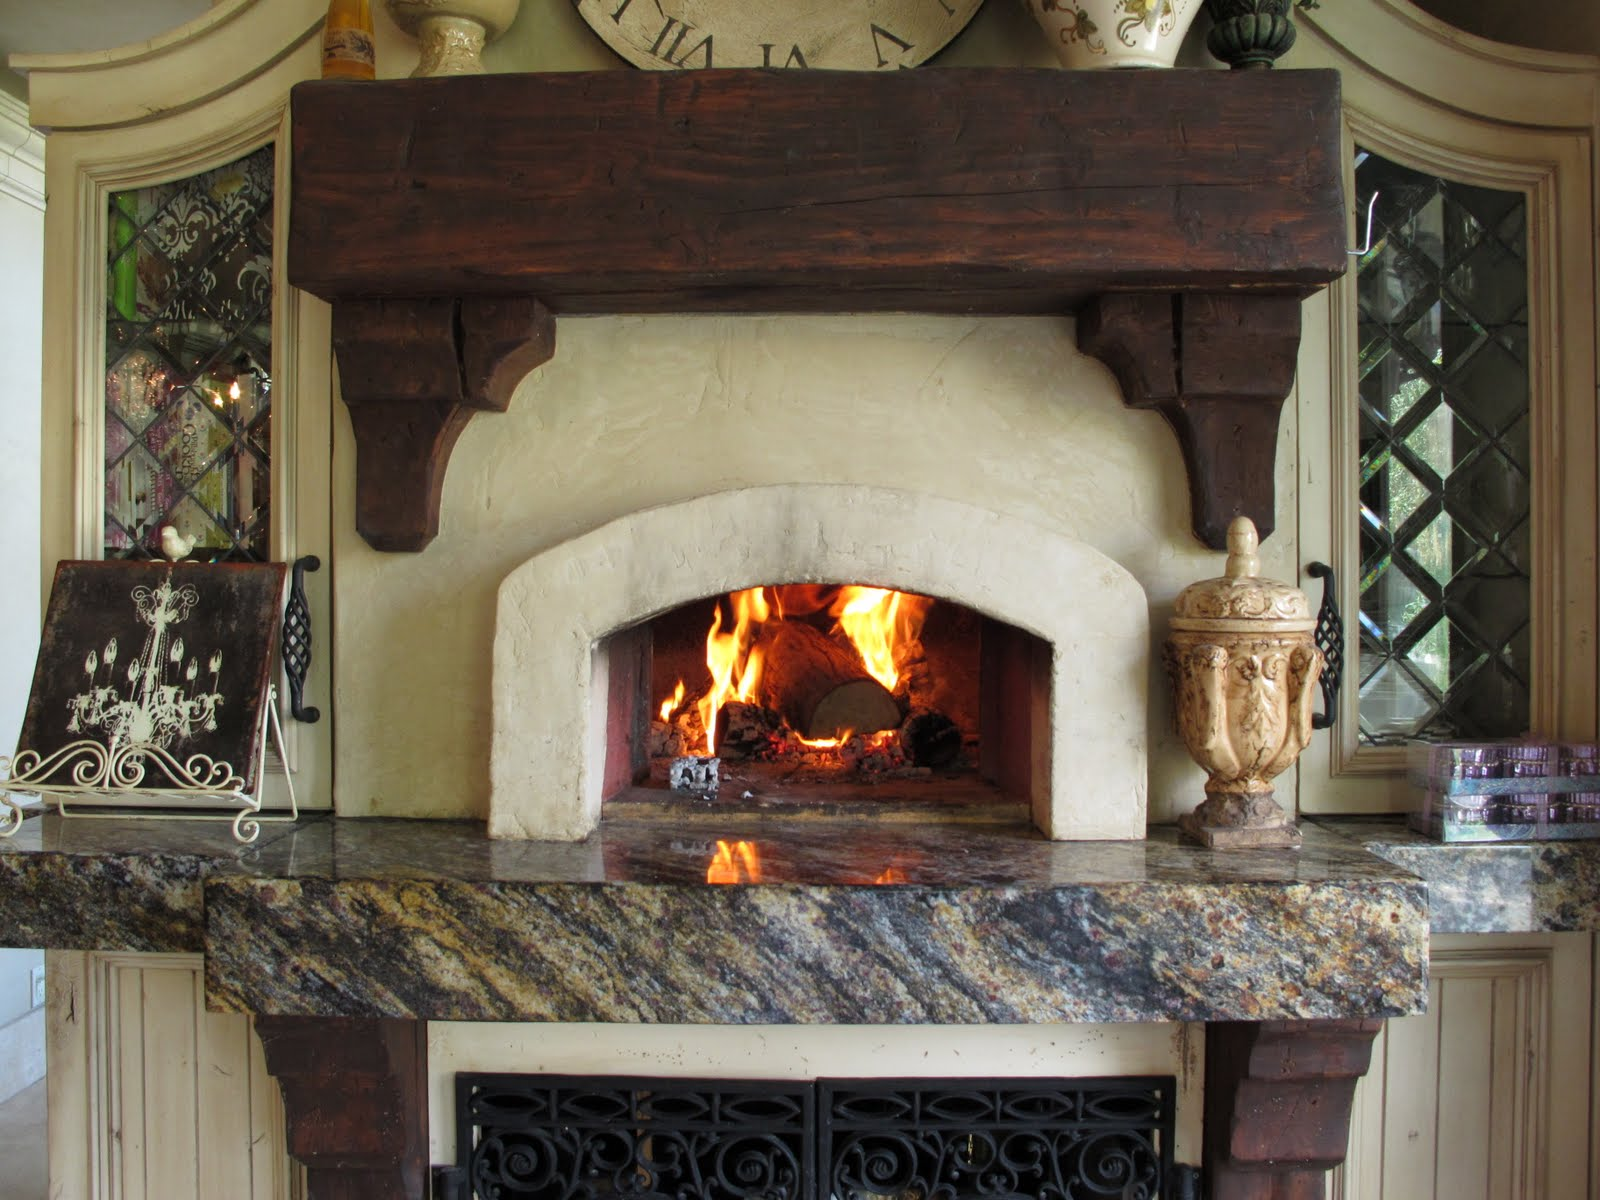 Kitchen WoodBurning Pizza Oven